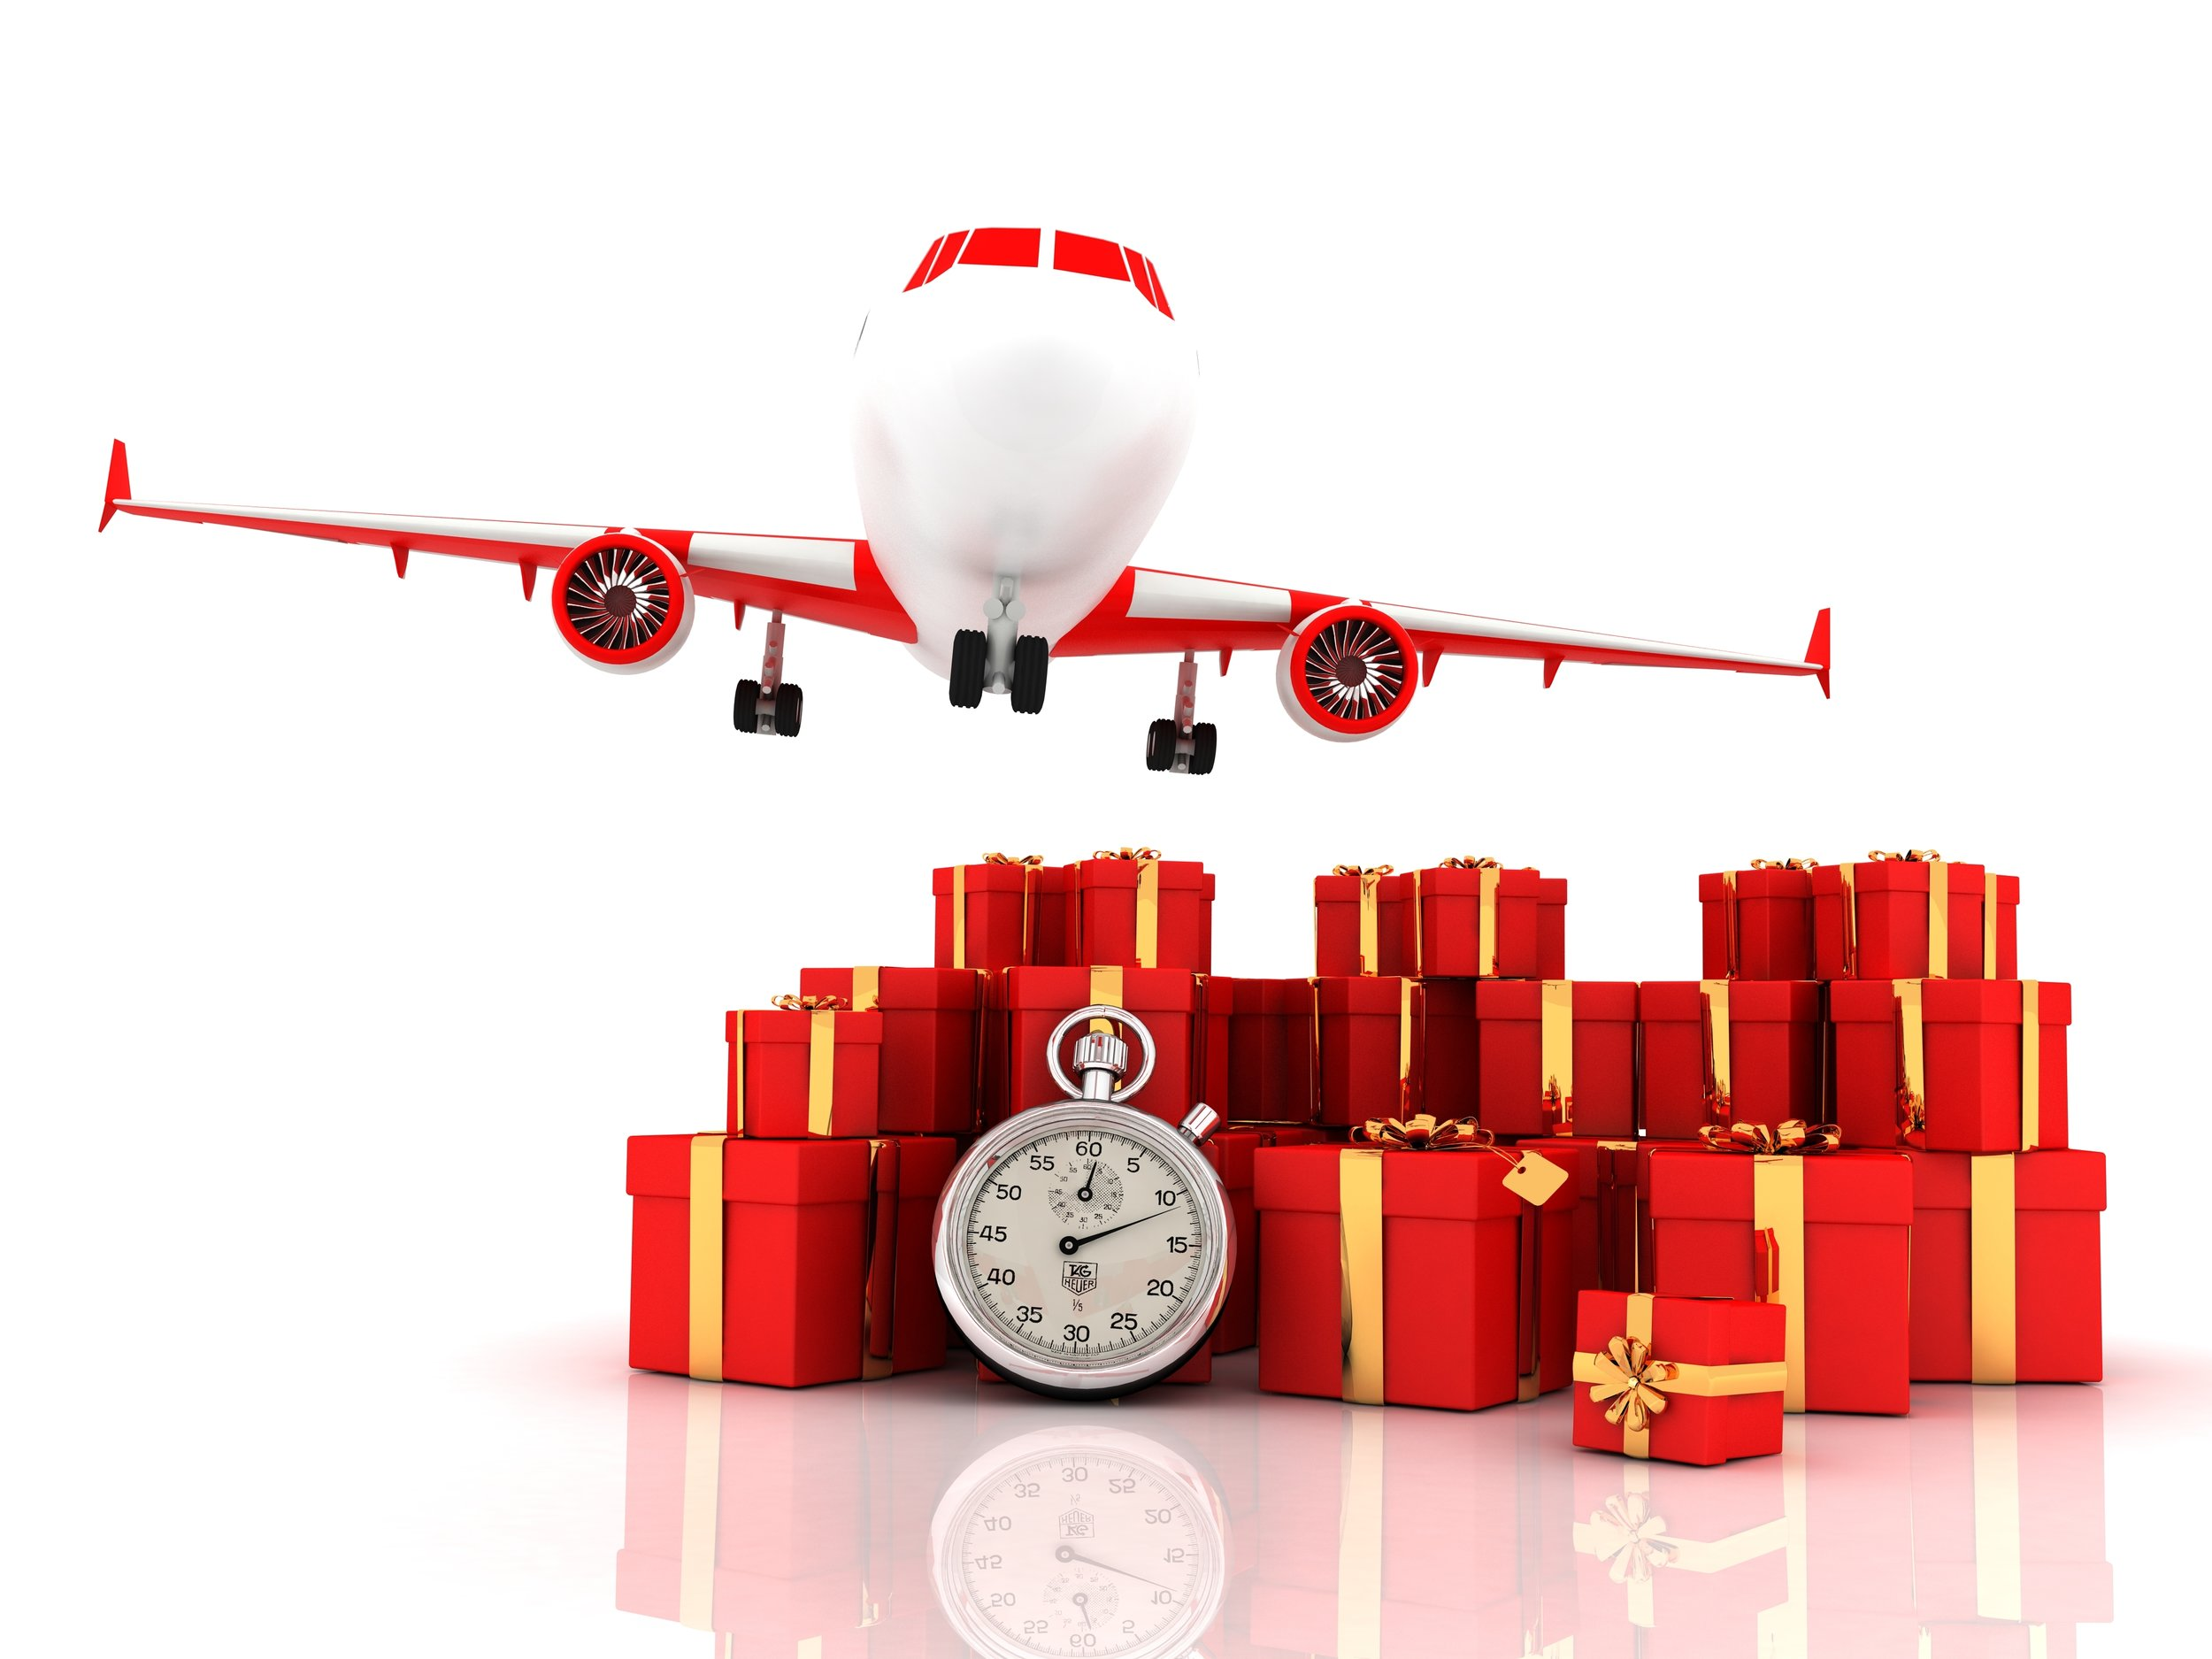 2013 Holiday Deliveries: A Perfect Storm for the Logistics Industry